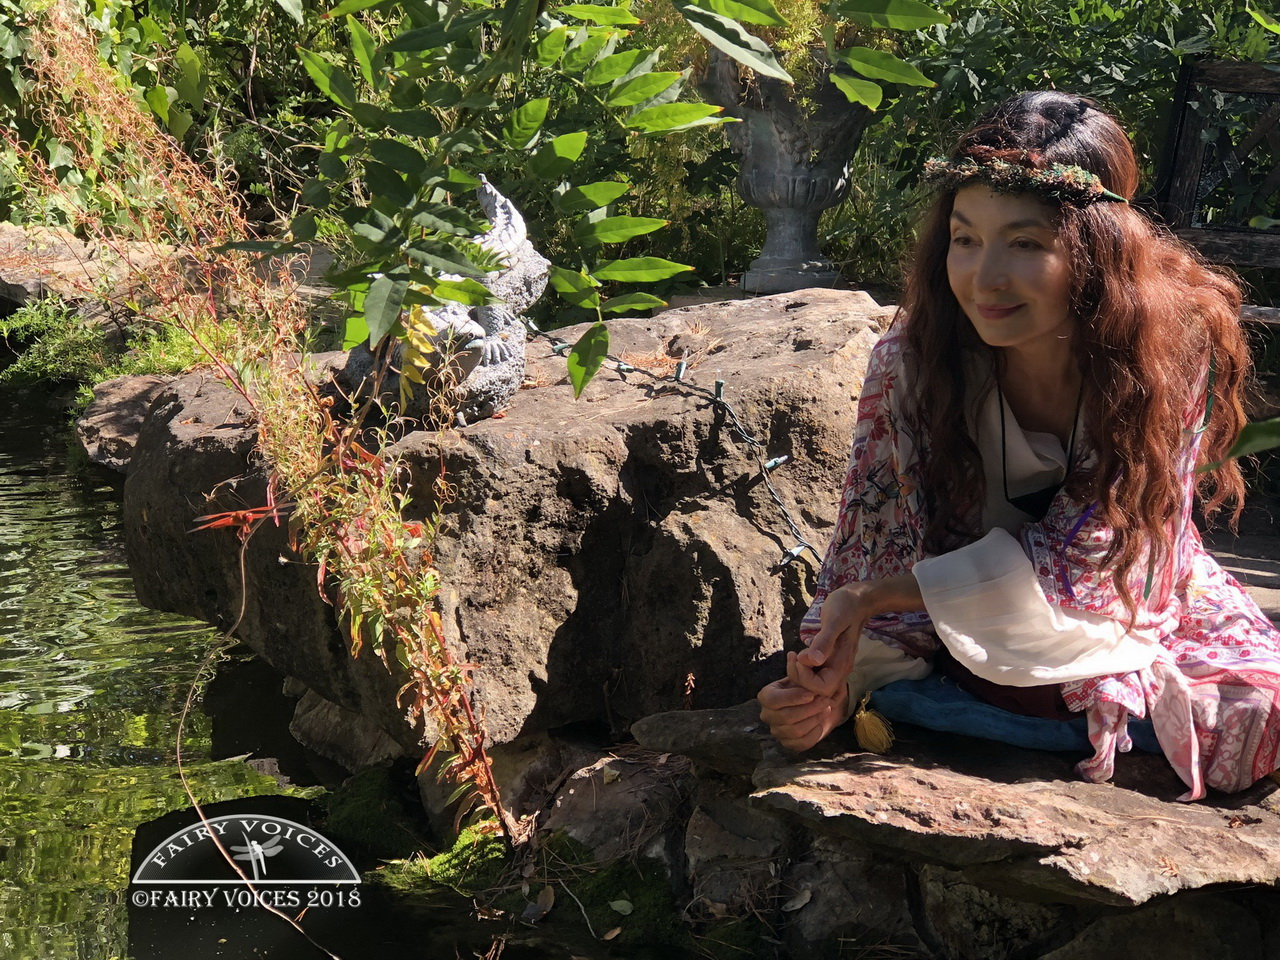 Fairy Garden Nazan Saatci with the Dragonfly Fairy, Afidouc, in 2019 posing for cameras to raise awareness